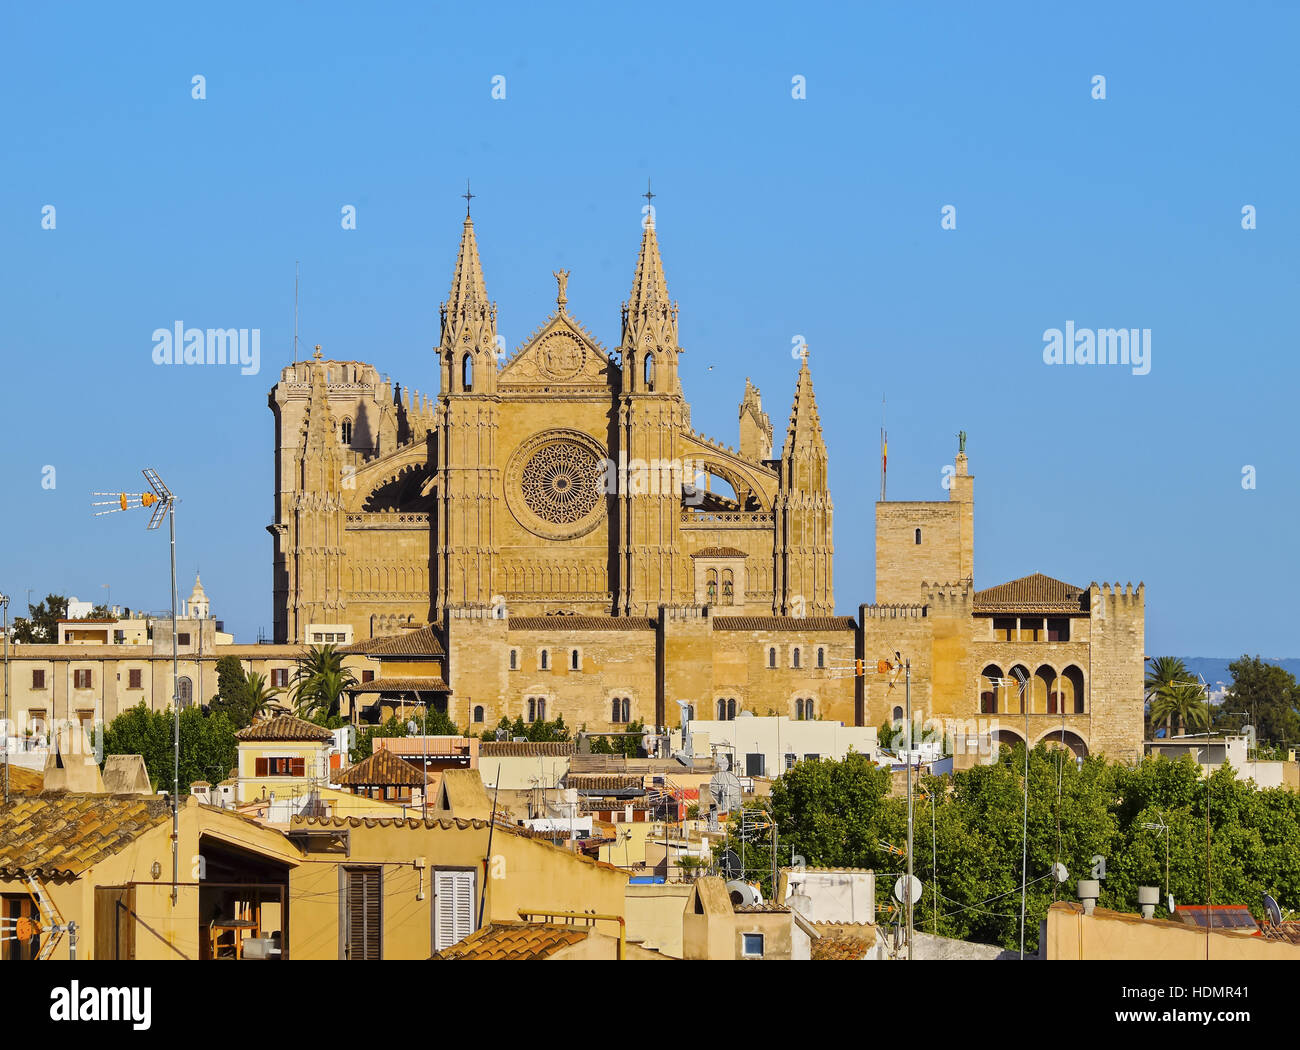 Cathedral La Seu, Palma de Mallorca, La Palma, Balearic Islands, Spain - Stock Image